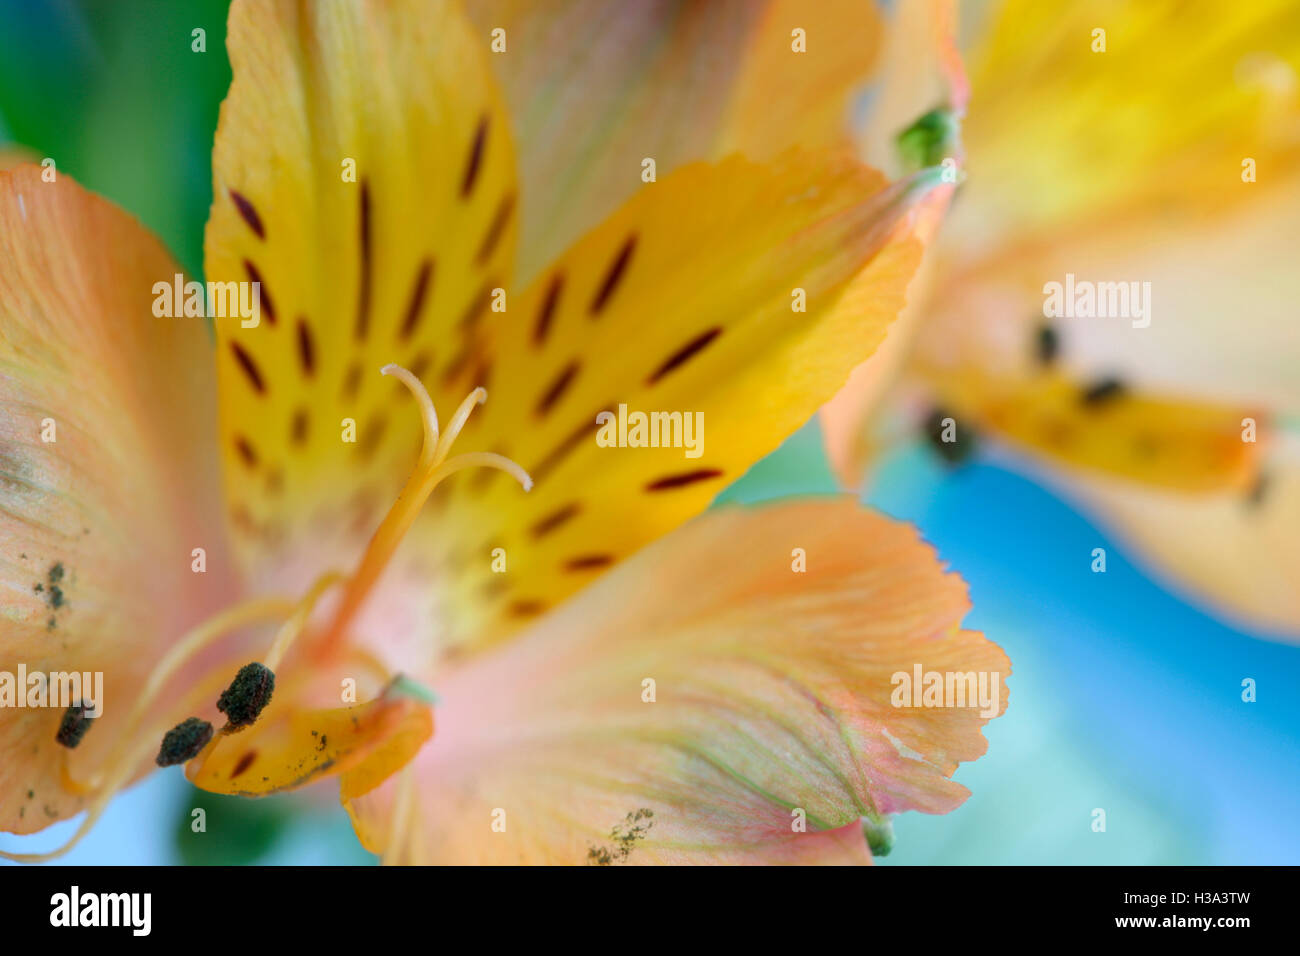 yellow alstroemeria flower symbolizes friendship and devotion Jane Ann Butler Photography JABP1635 - Stock Image